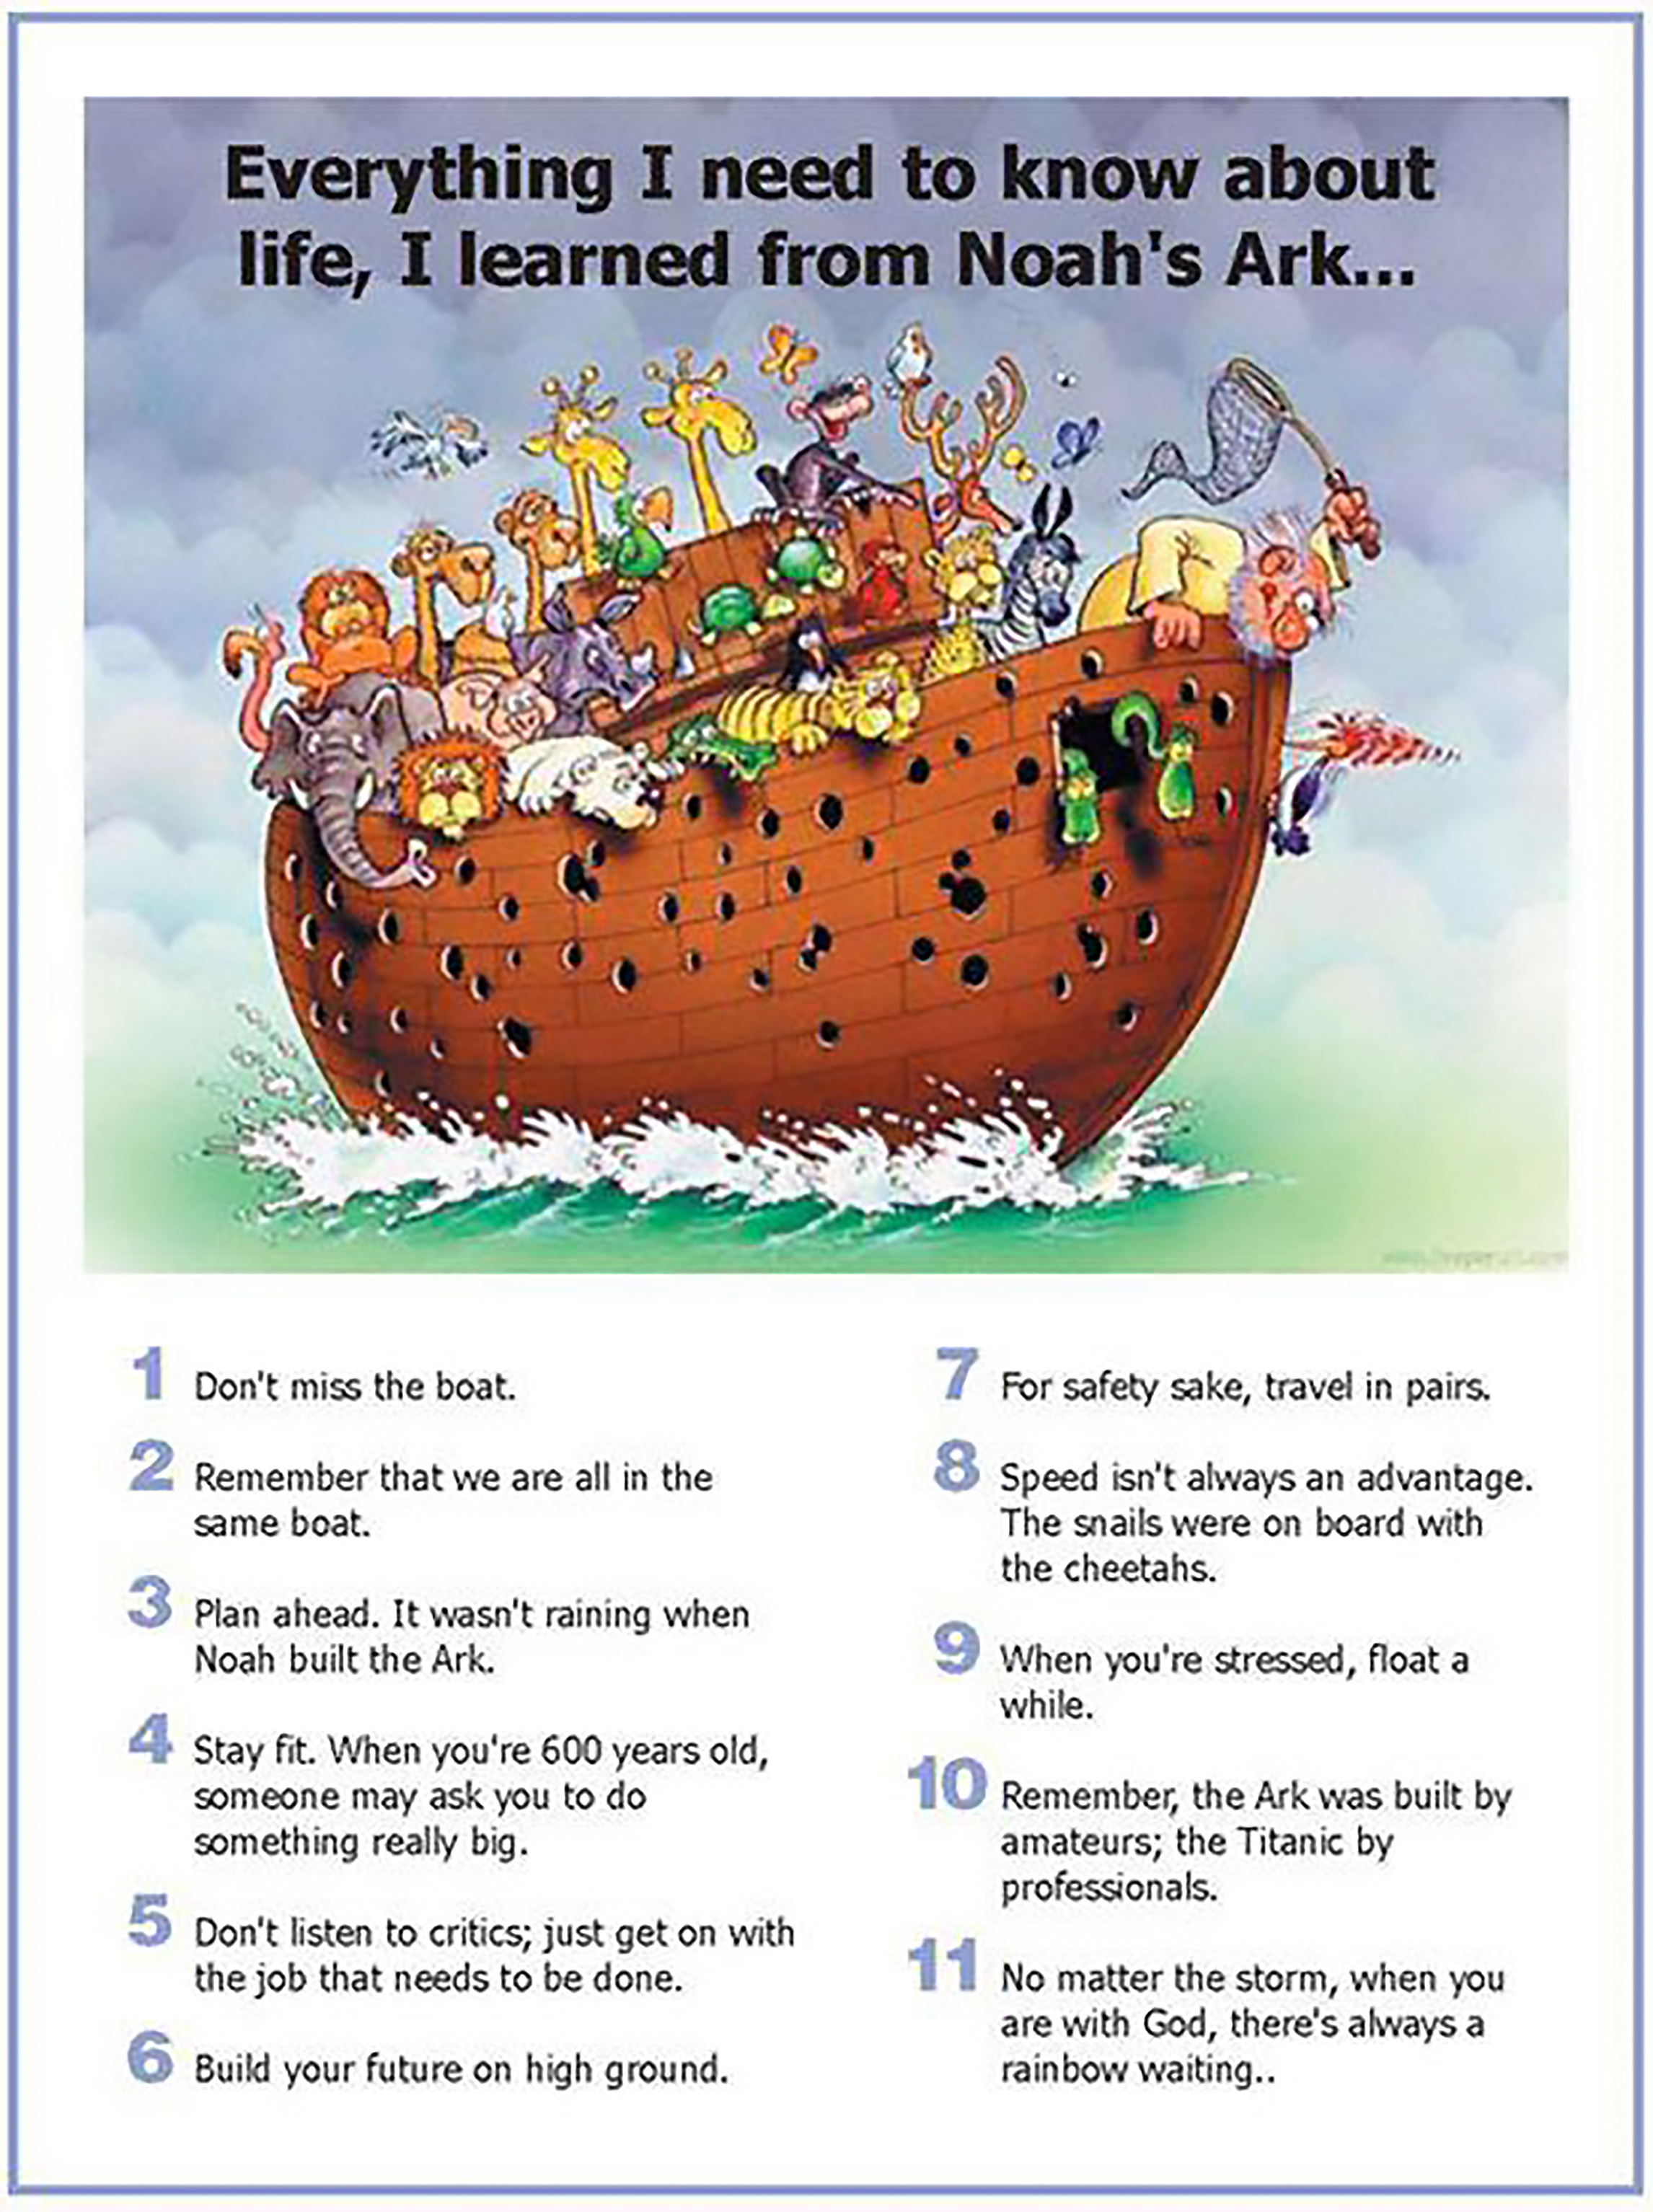 everything I learned from noahs ark